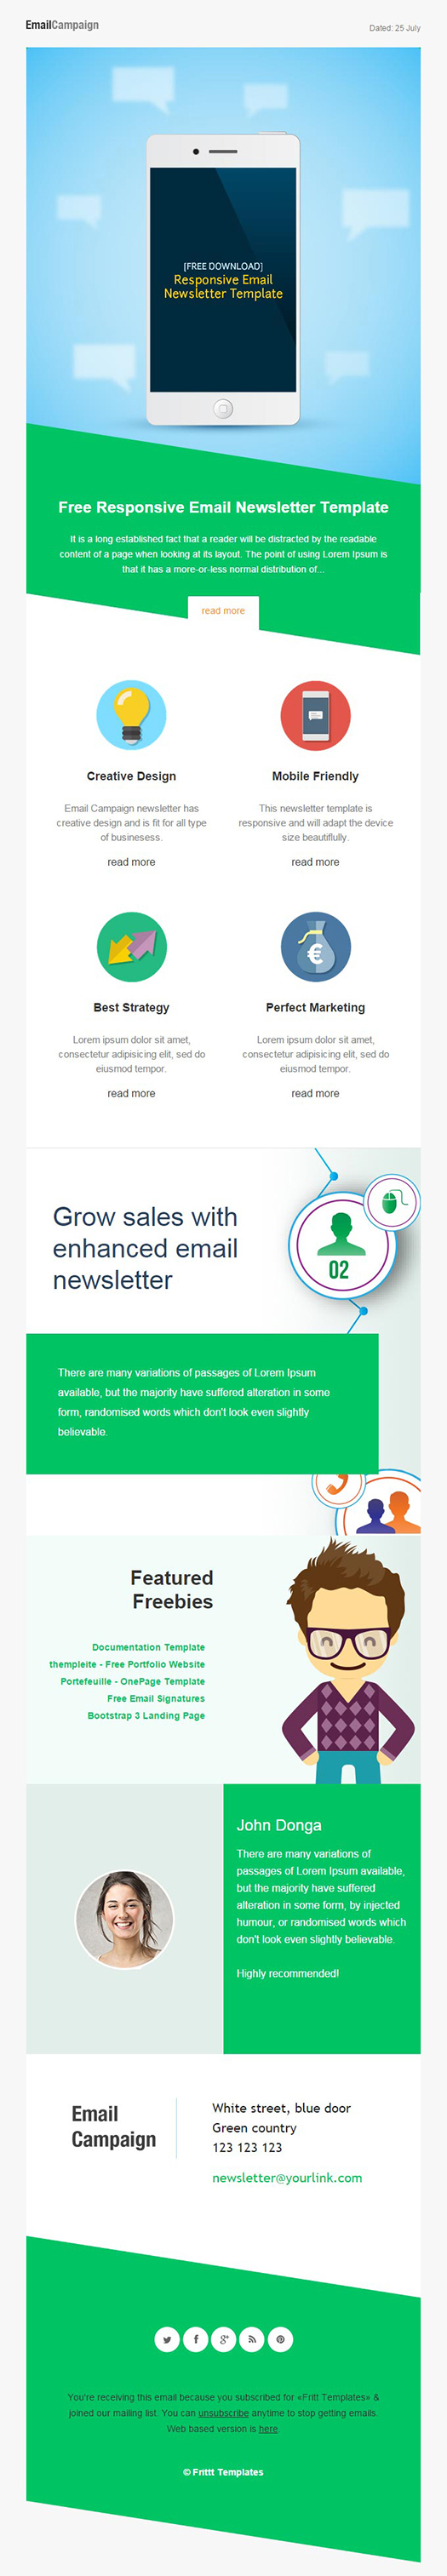 8 free newsletter templates creative bloq for How to create an email newsletter template